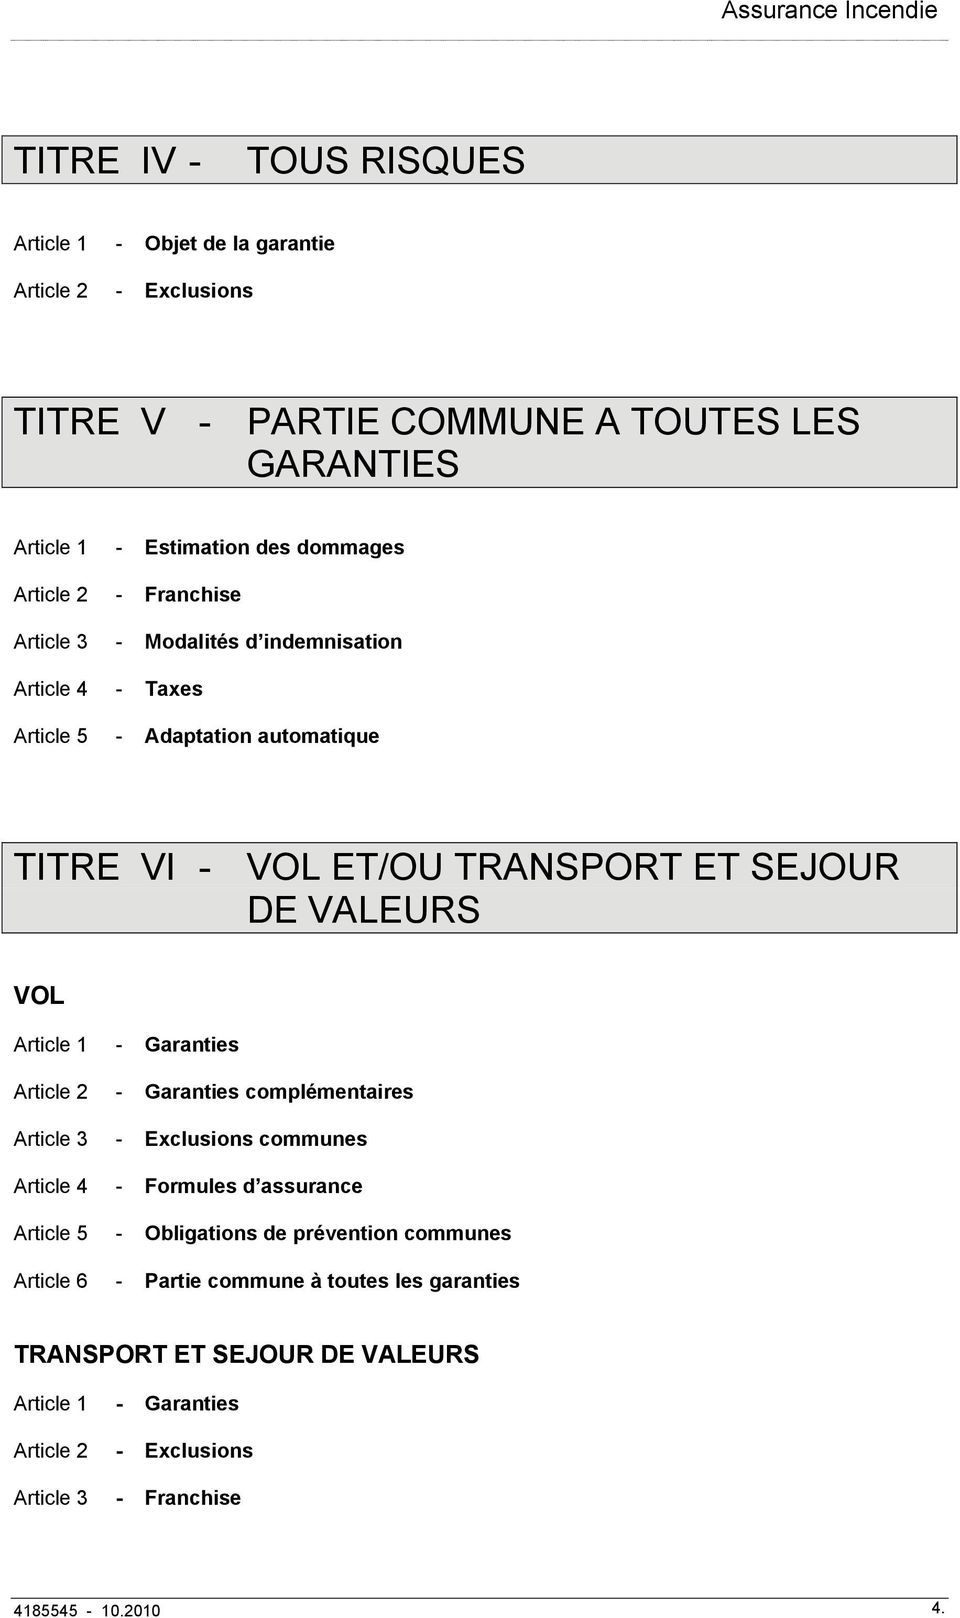 VOL Article 1 - Garanties Article 2 - Garanties complémentaires Article 3 - Exclusions communes Article 4 - Formules d assurance Article 5 - Obligations de prévention